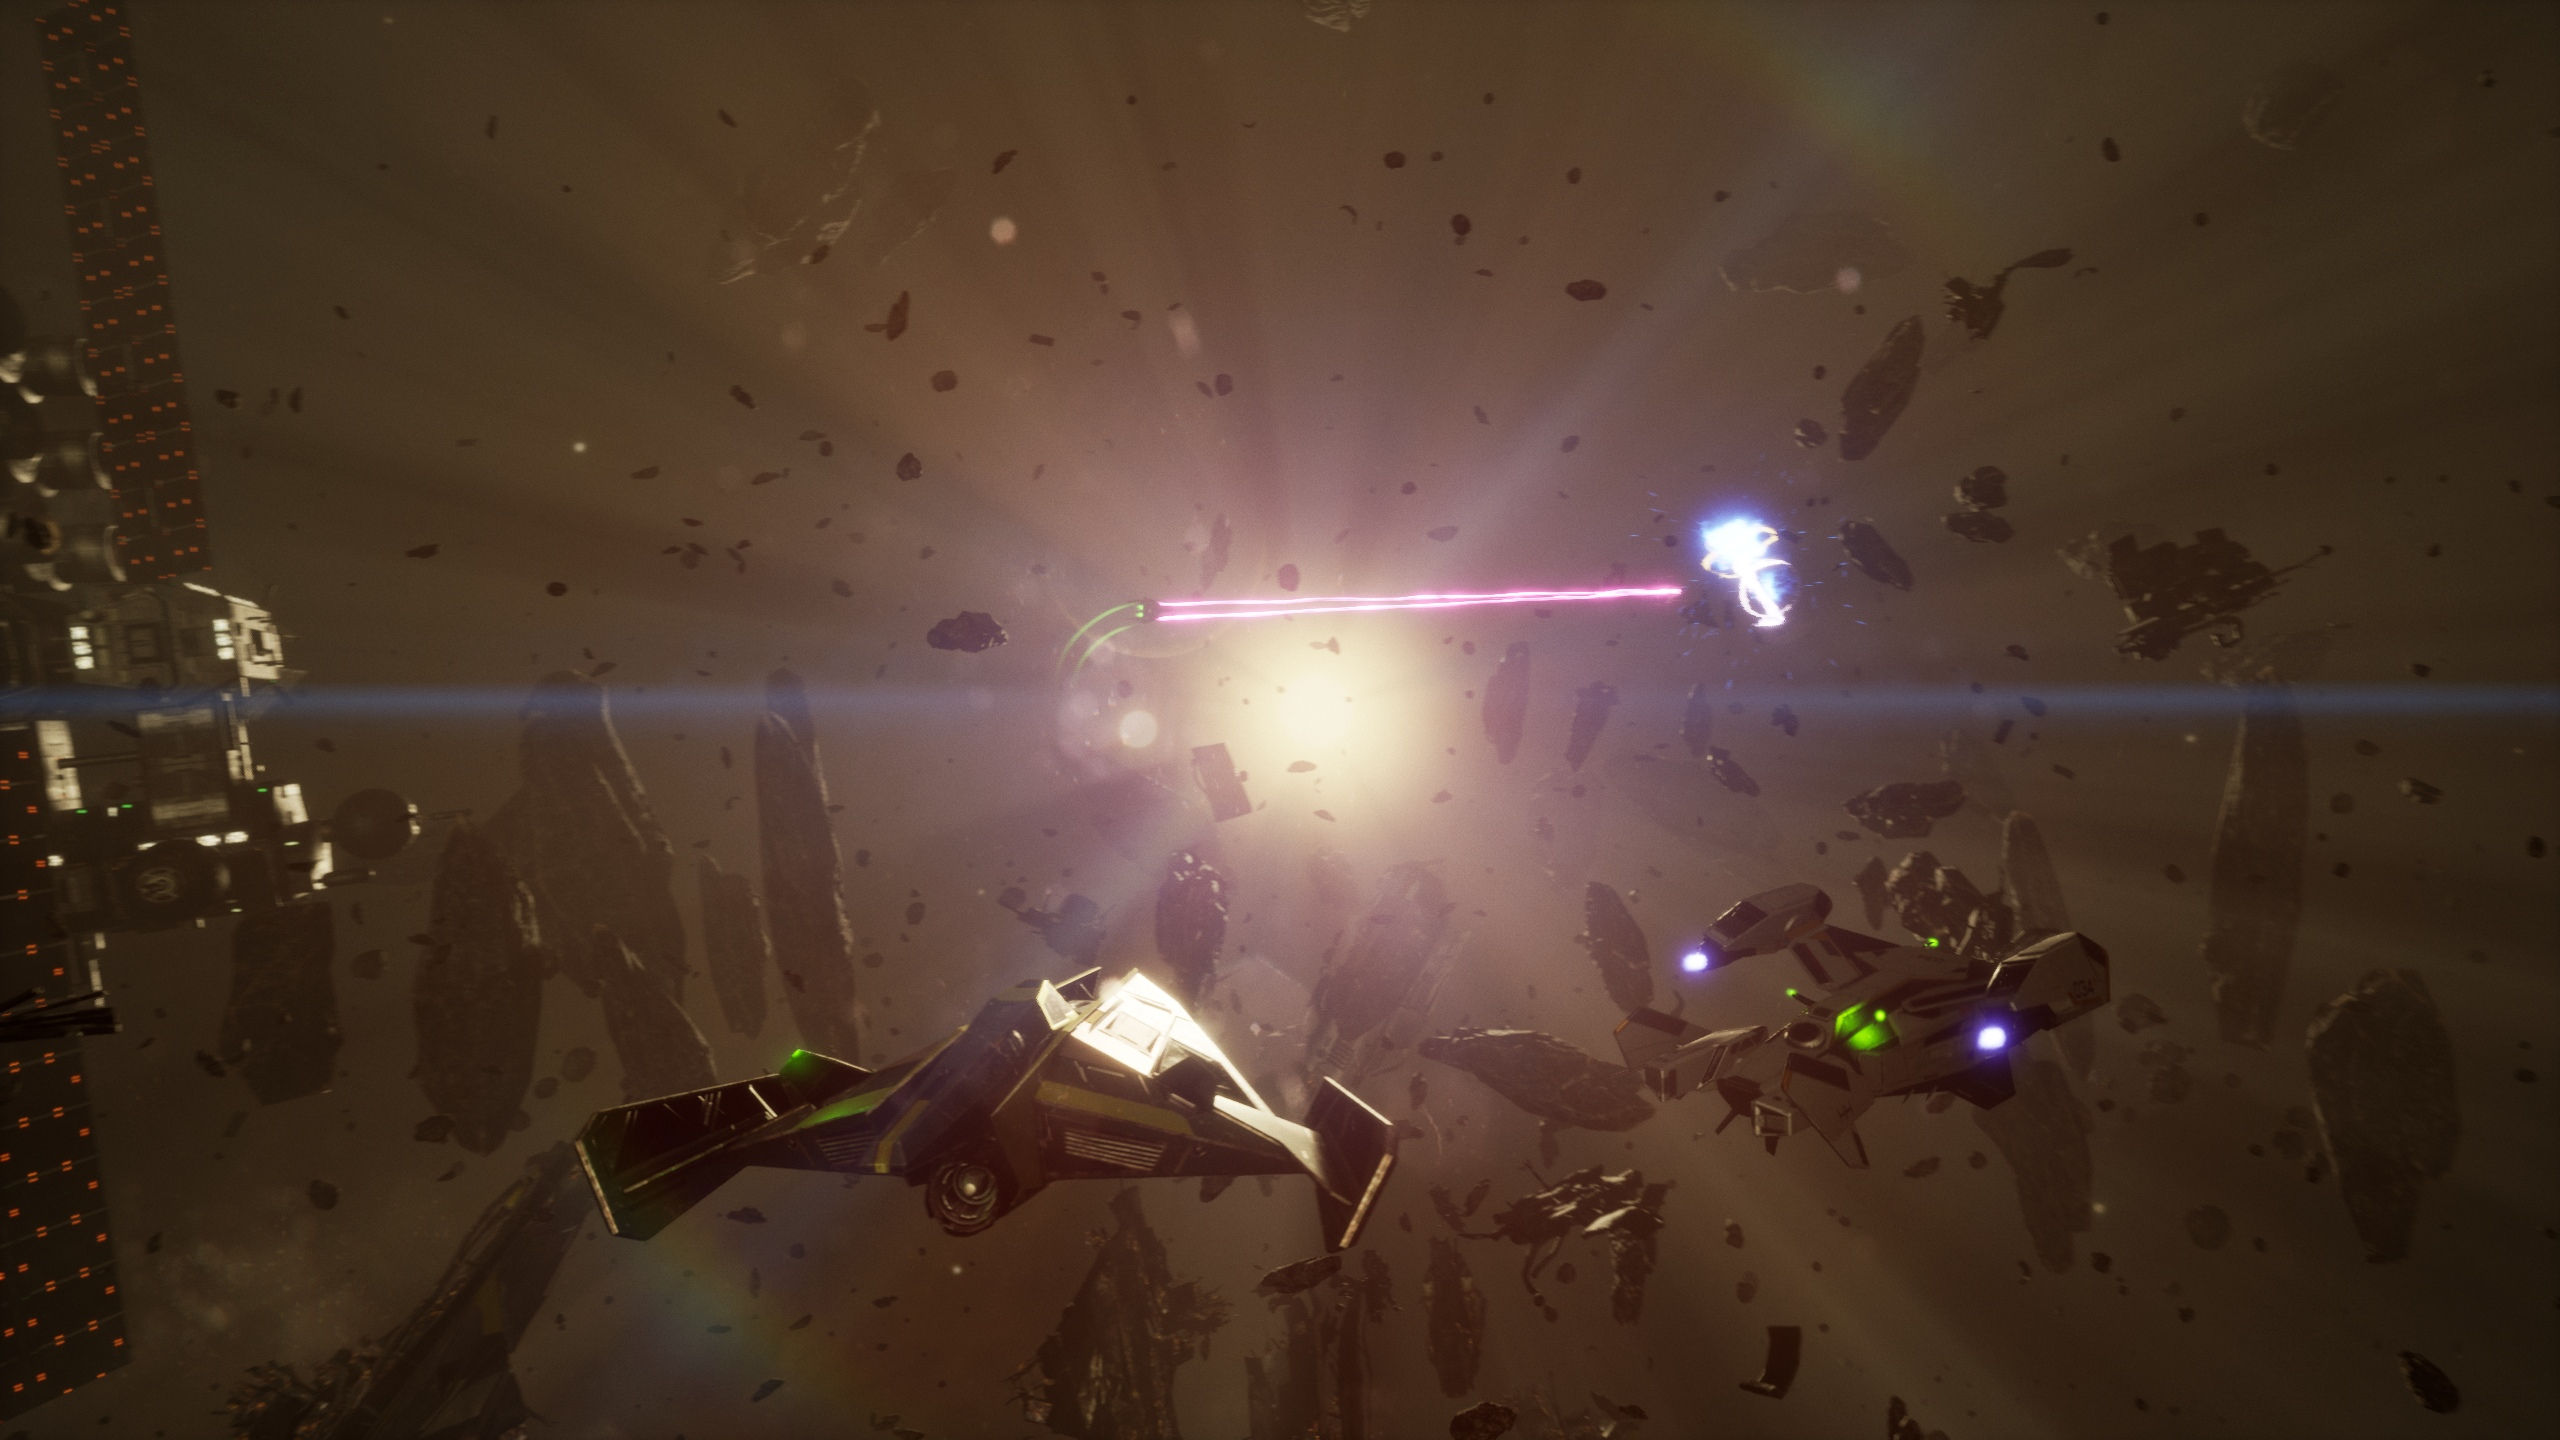 subdivision-infinity-dx-takes-off-on-consoles5-pc-in-early-2019-frikigamers.com.jpg